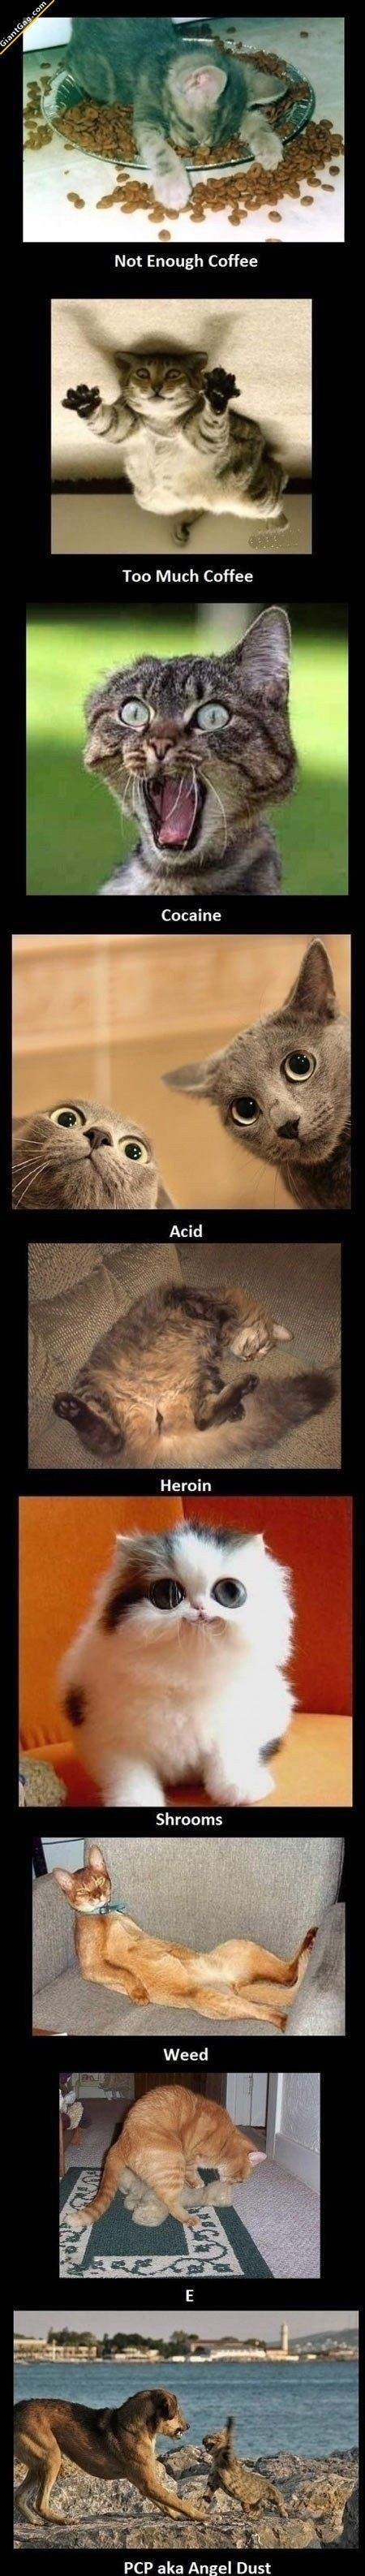 Cats On Drugs | Click the link to view full image and description : )